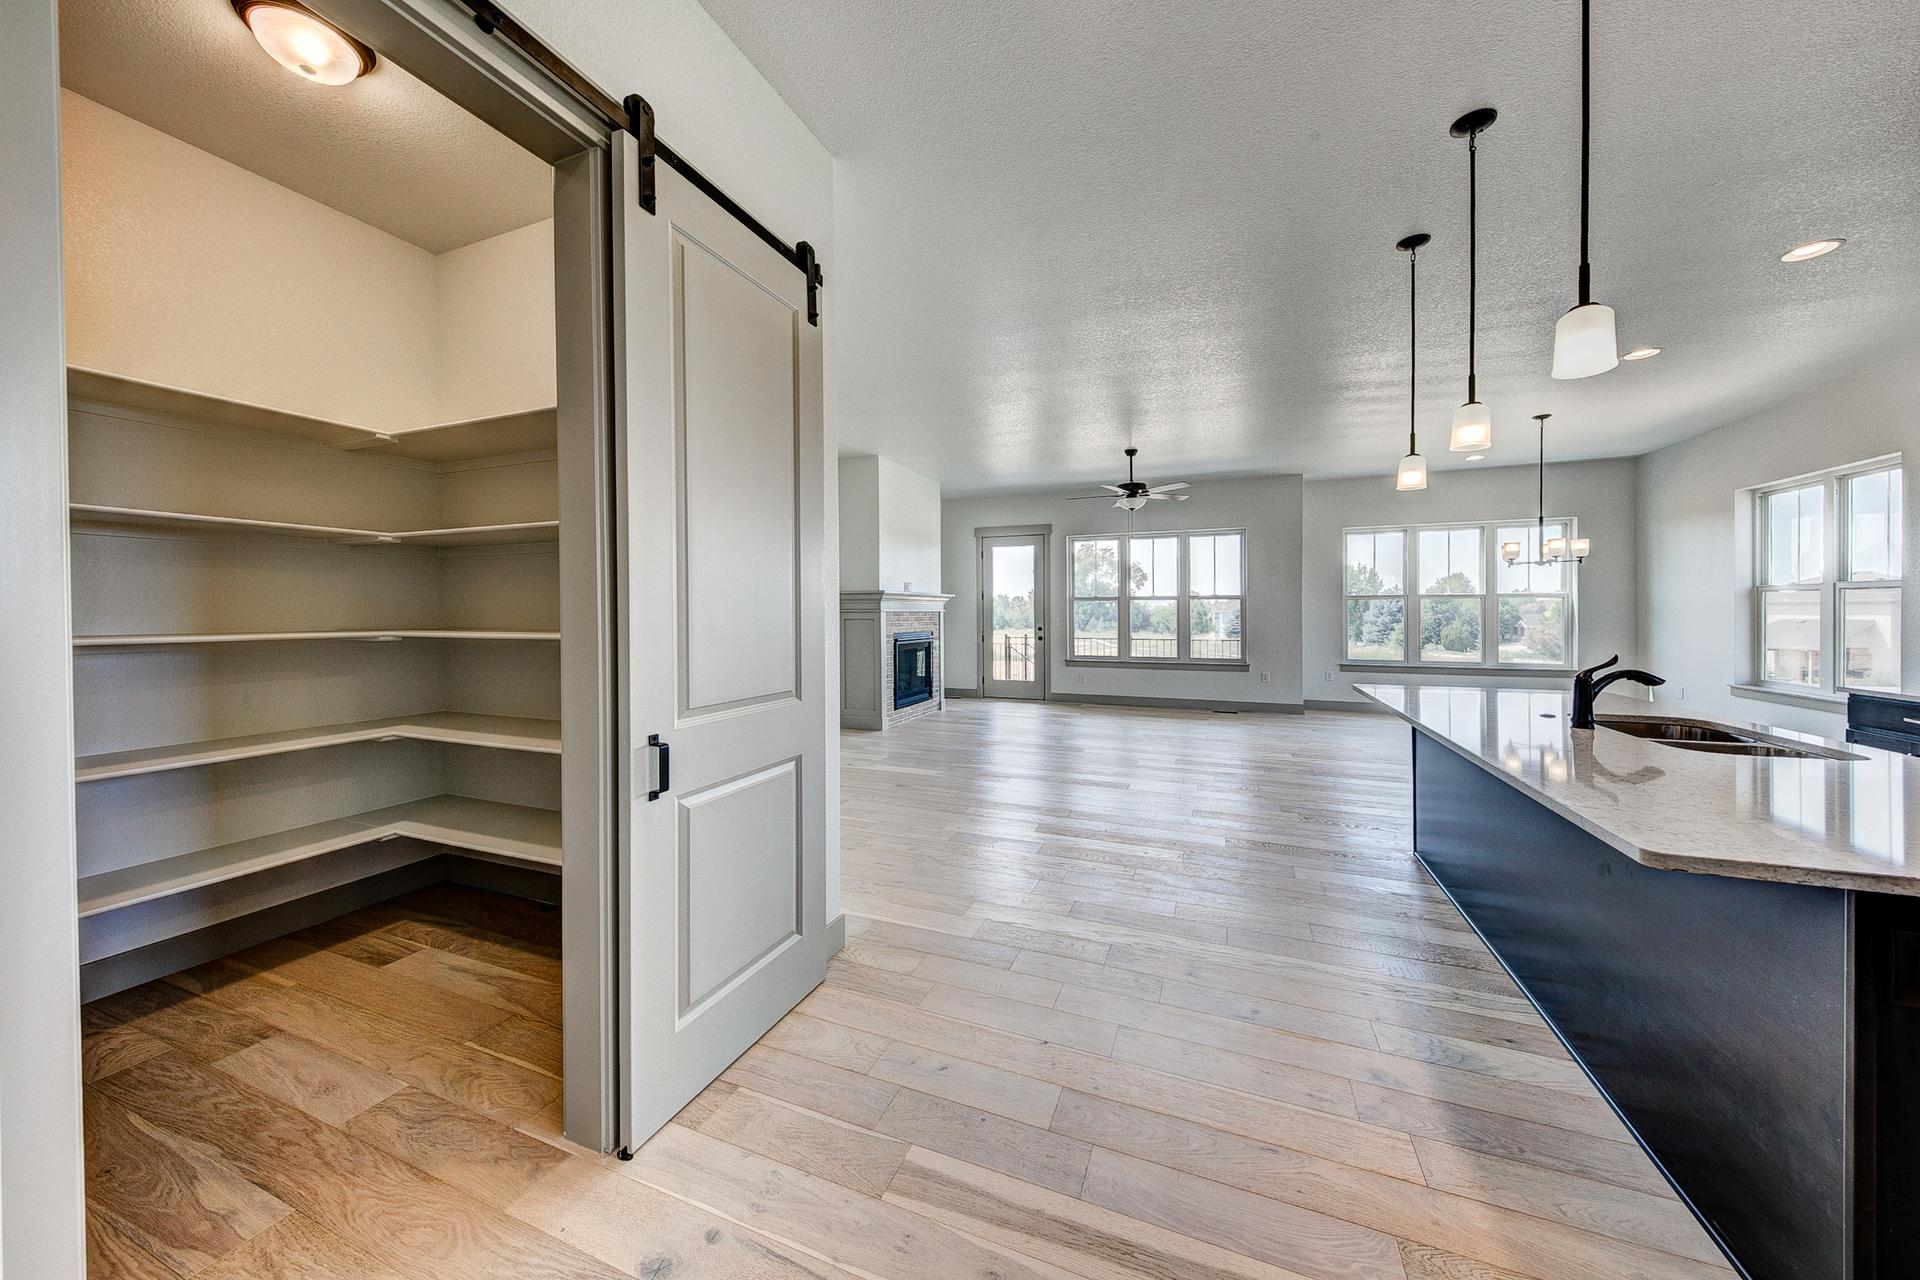 Kitchen - Not Actual Home - Finishes Will Vary